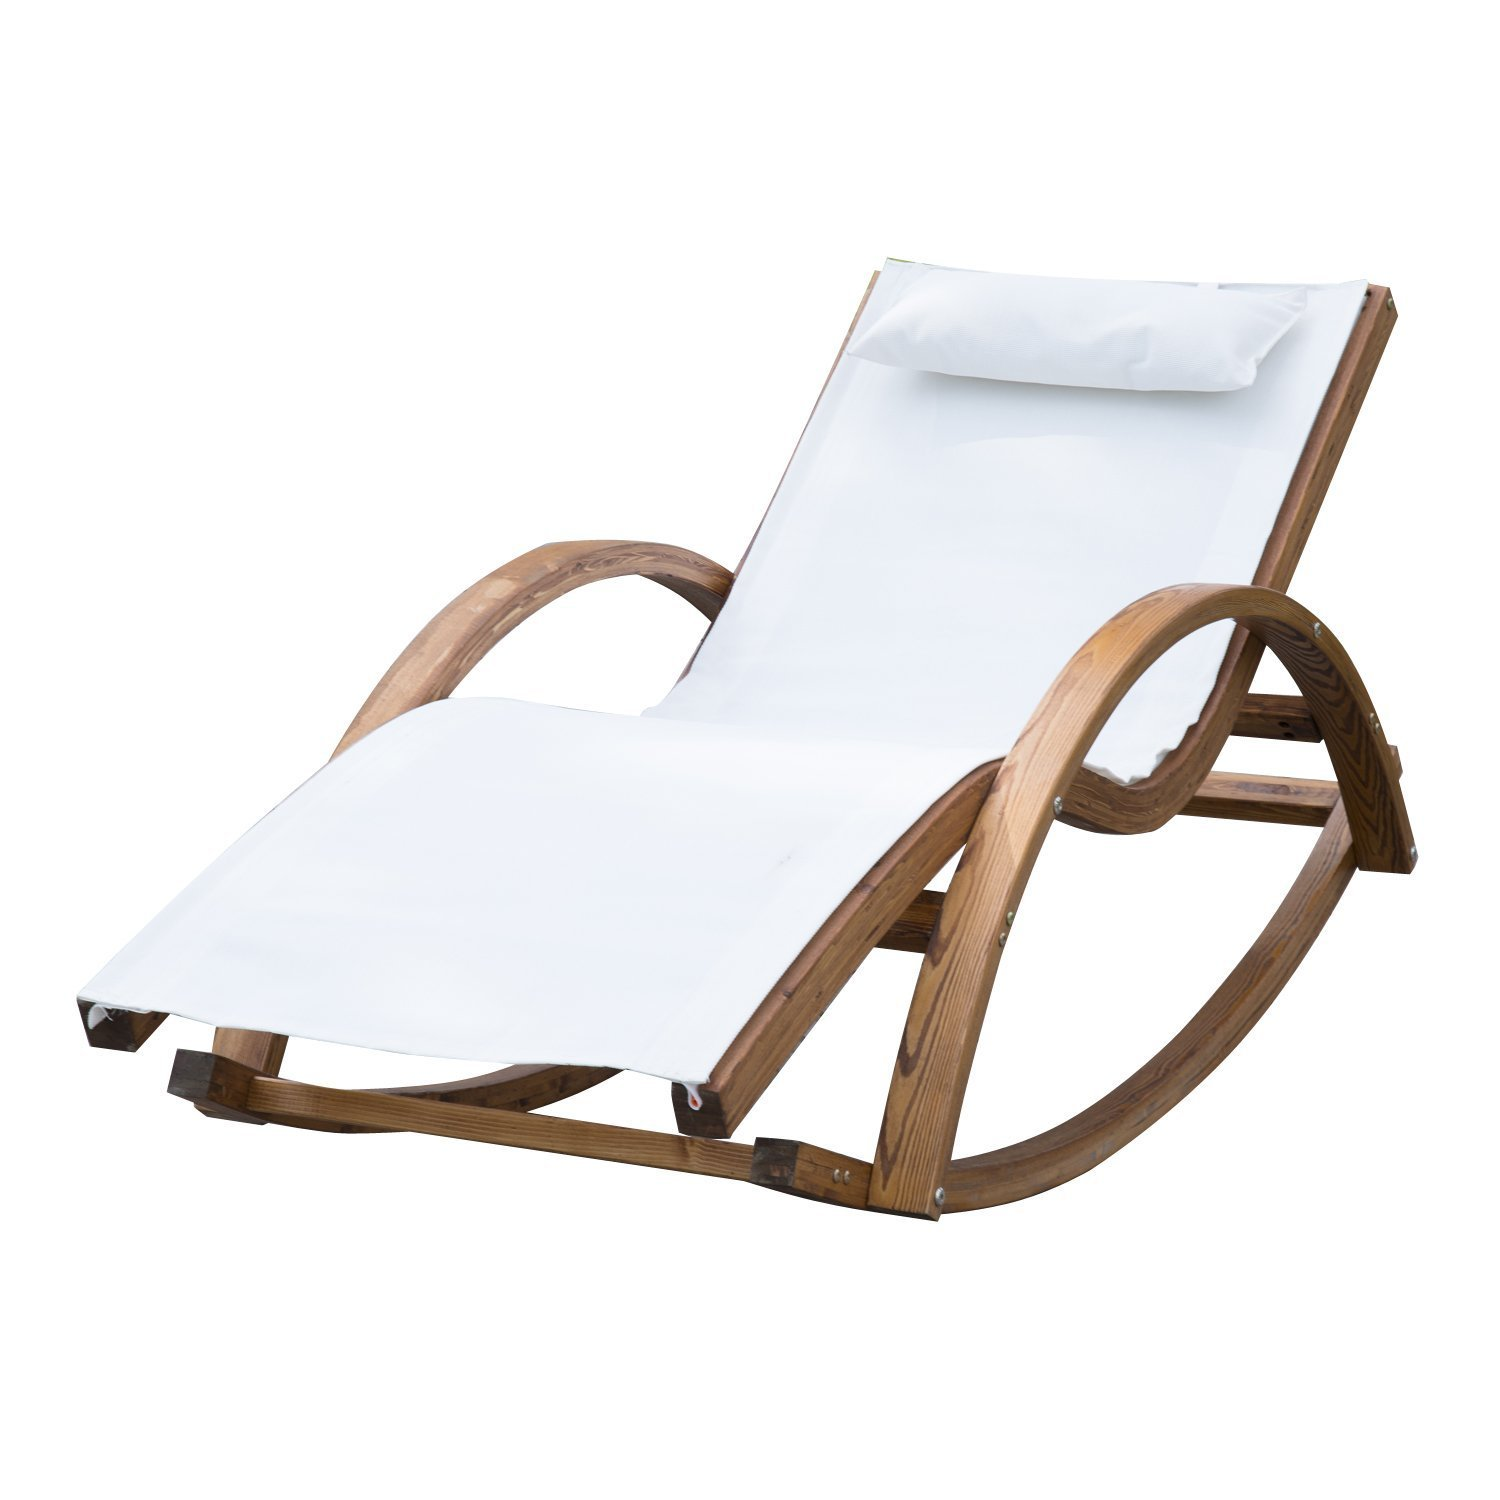 Outsunny Outsunny Outsunny Liegestuhl Sonnenliege Gartenliege Lounge Schaukelliege Relaxliege Relaxsessel mit Schaukelfunktion (Modell 1 Creme) b5e354